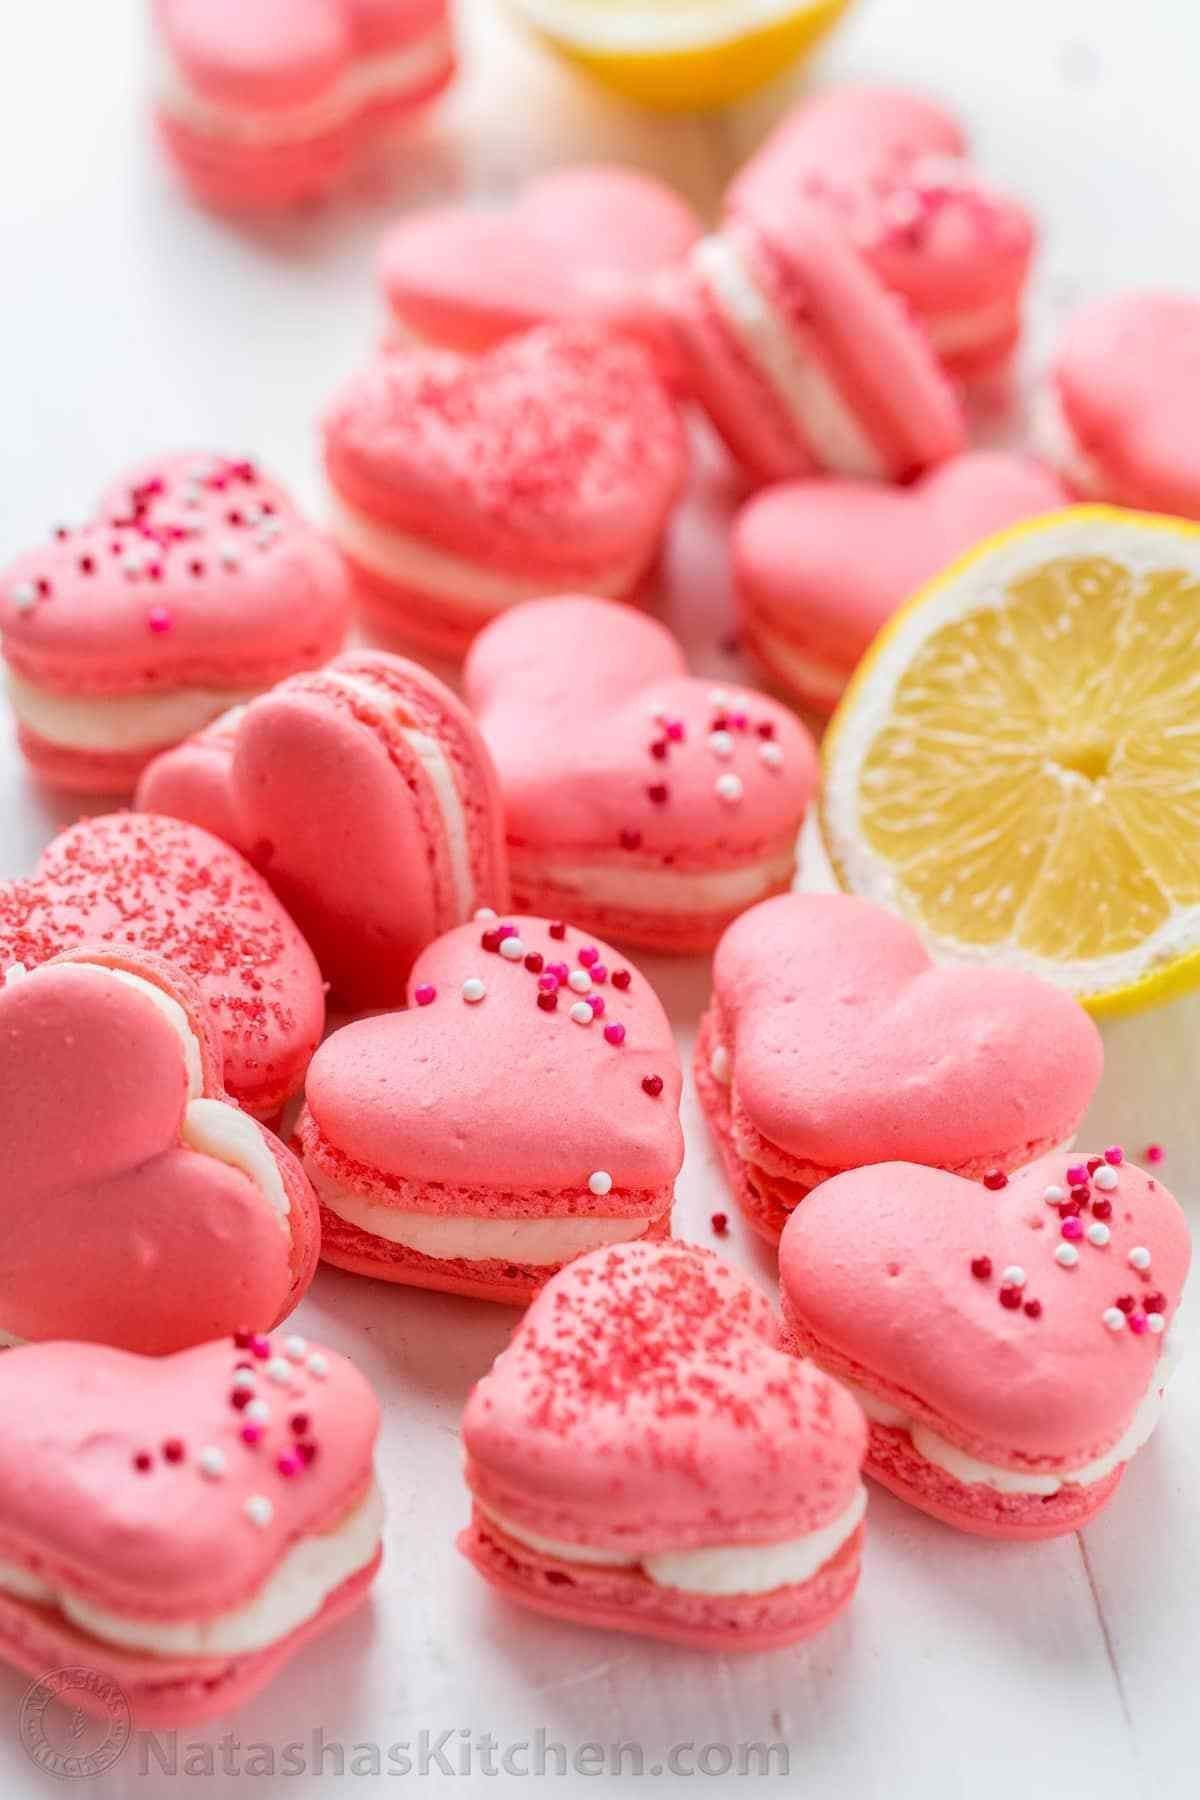 Heart Macarons with Lemon Buttercream (VIDEO) - NatashasKitchen.com #lemonbuttercream Heart Macarons with Lemon Buttercream (VIDEO) - NatashasKitchen.com #lemonbuttercream